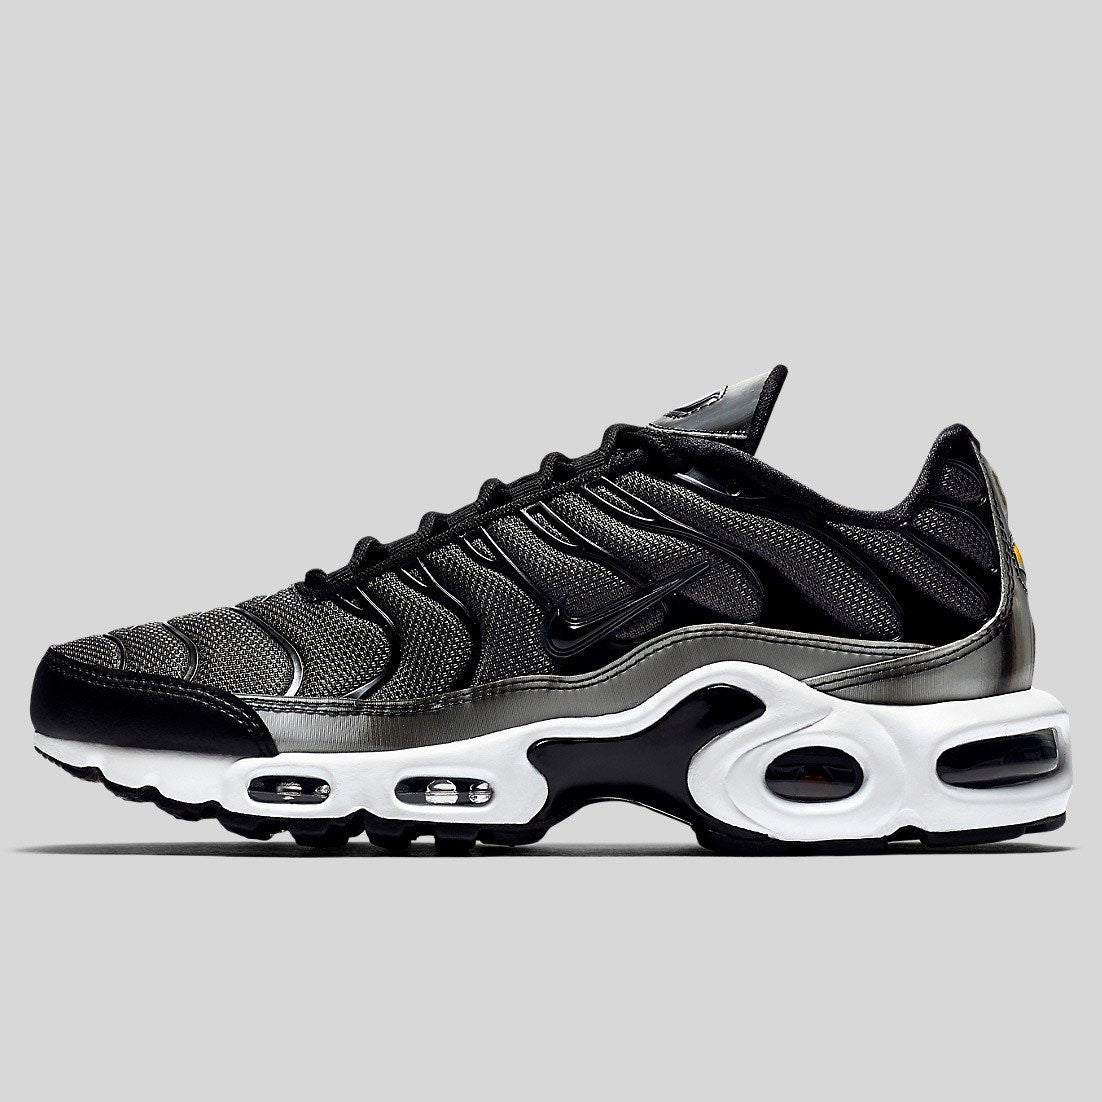 Nike Wmns Air Max Plus SE Black Anthracite White